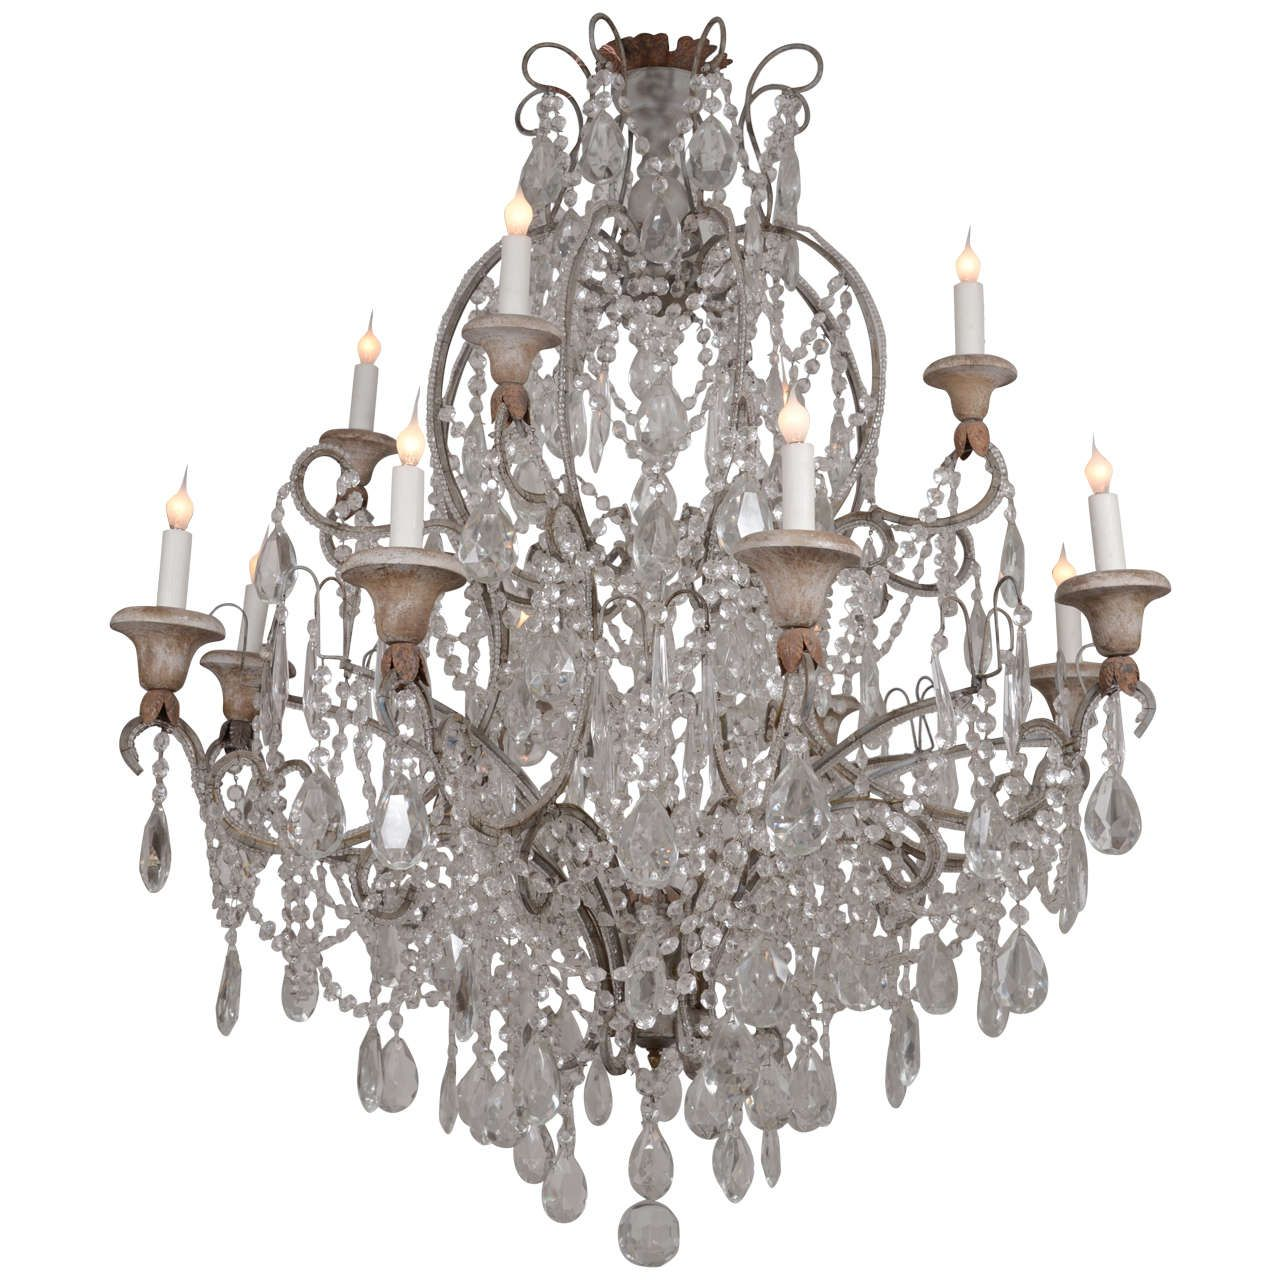 Italian Crystal Chandelier - Antique Italian Chandelier From A Unique Collection Of Antique And